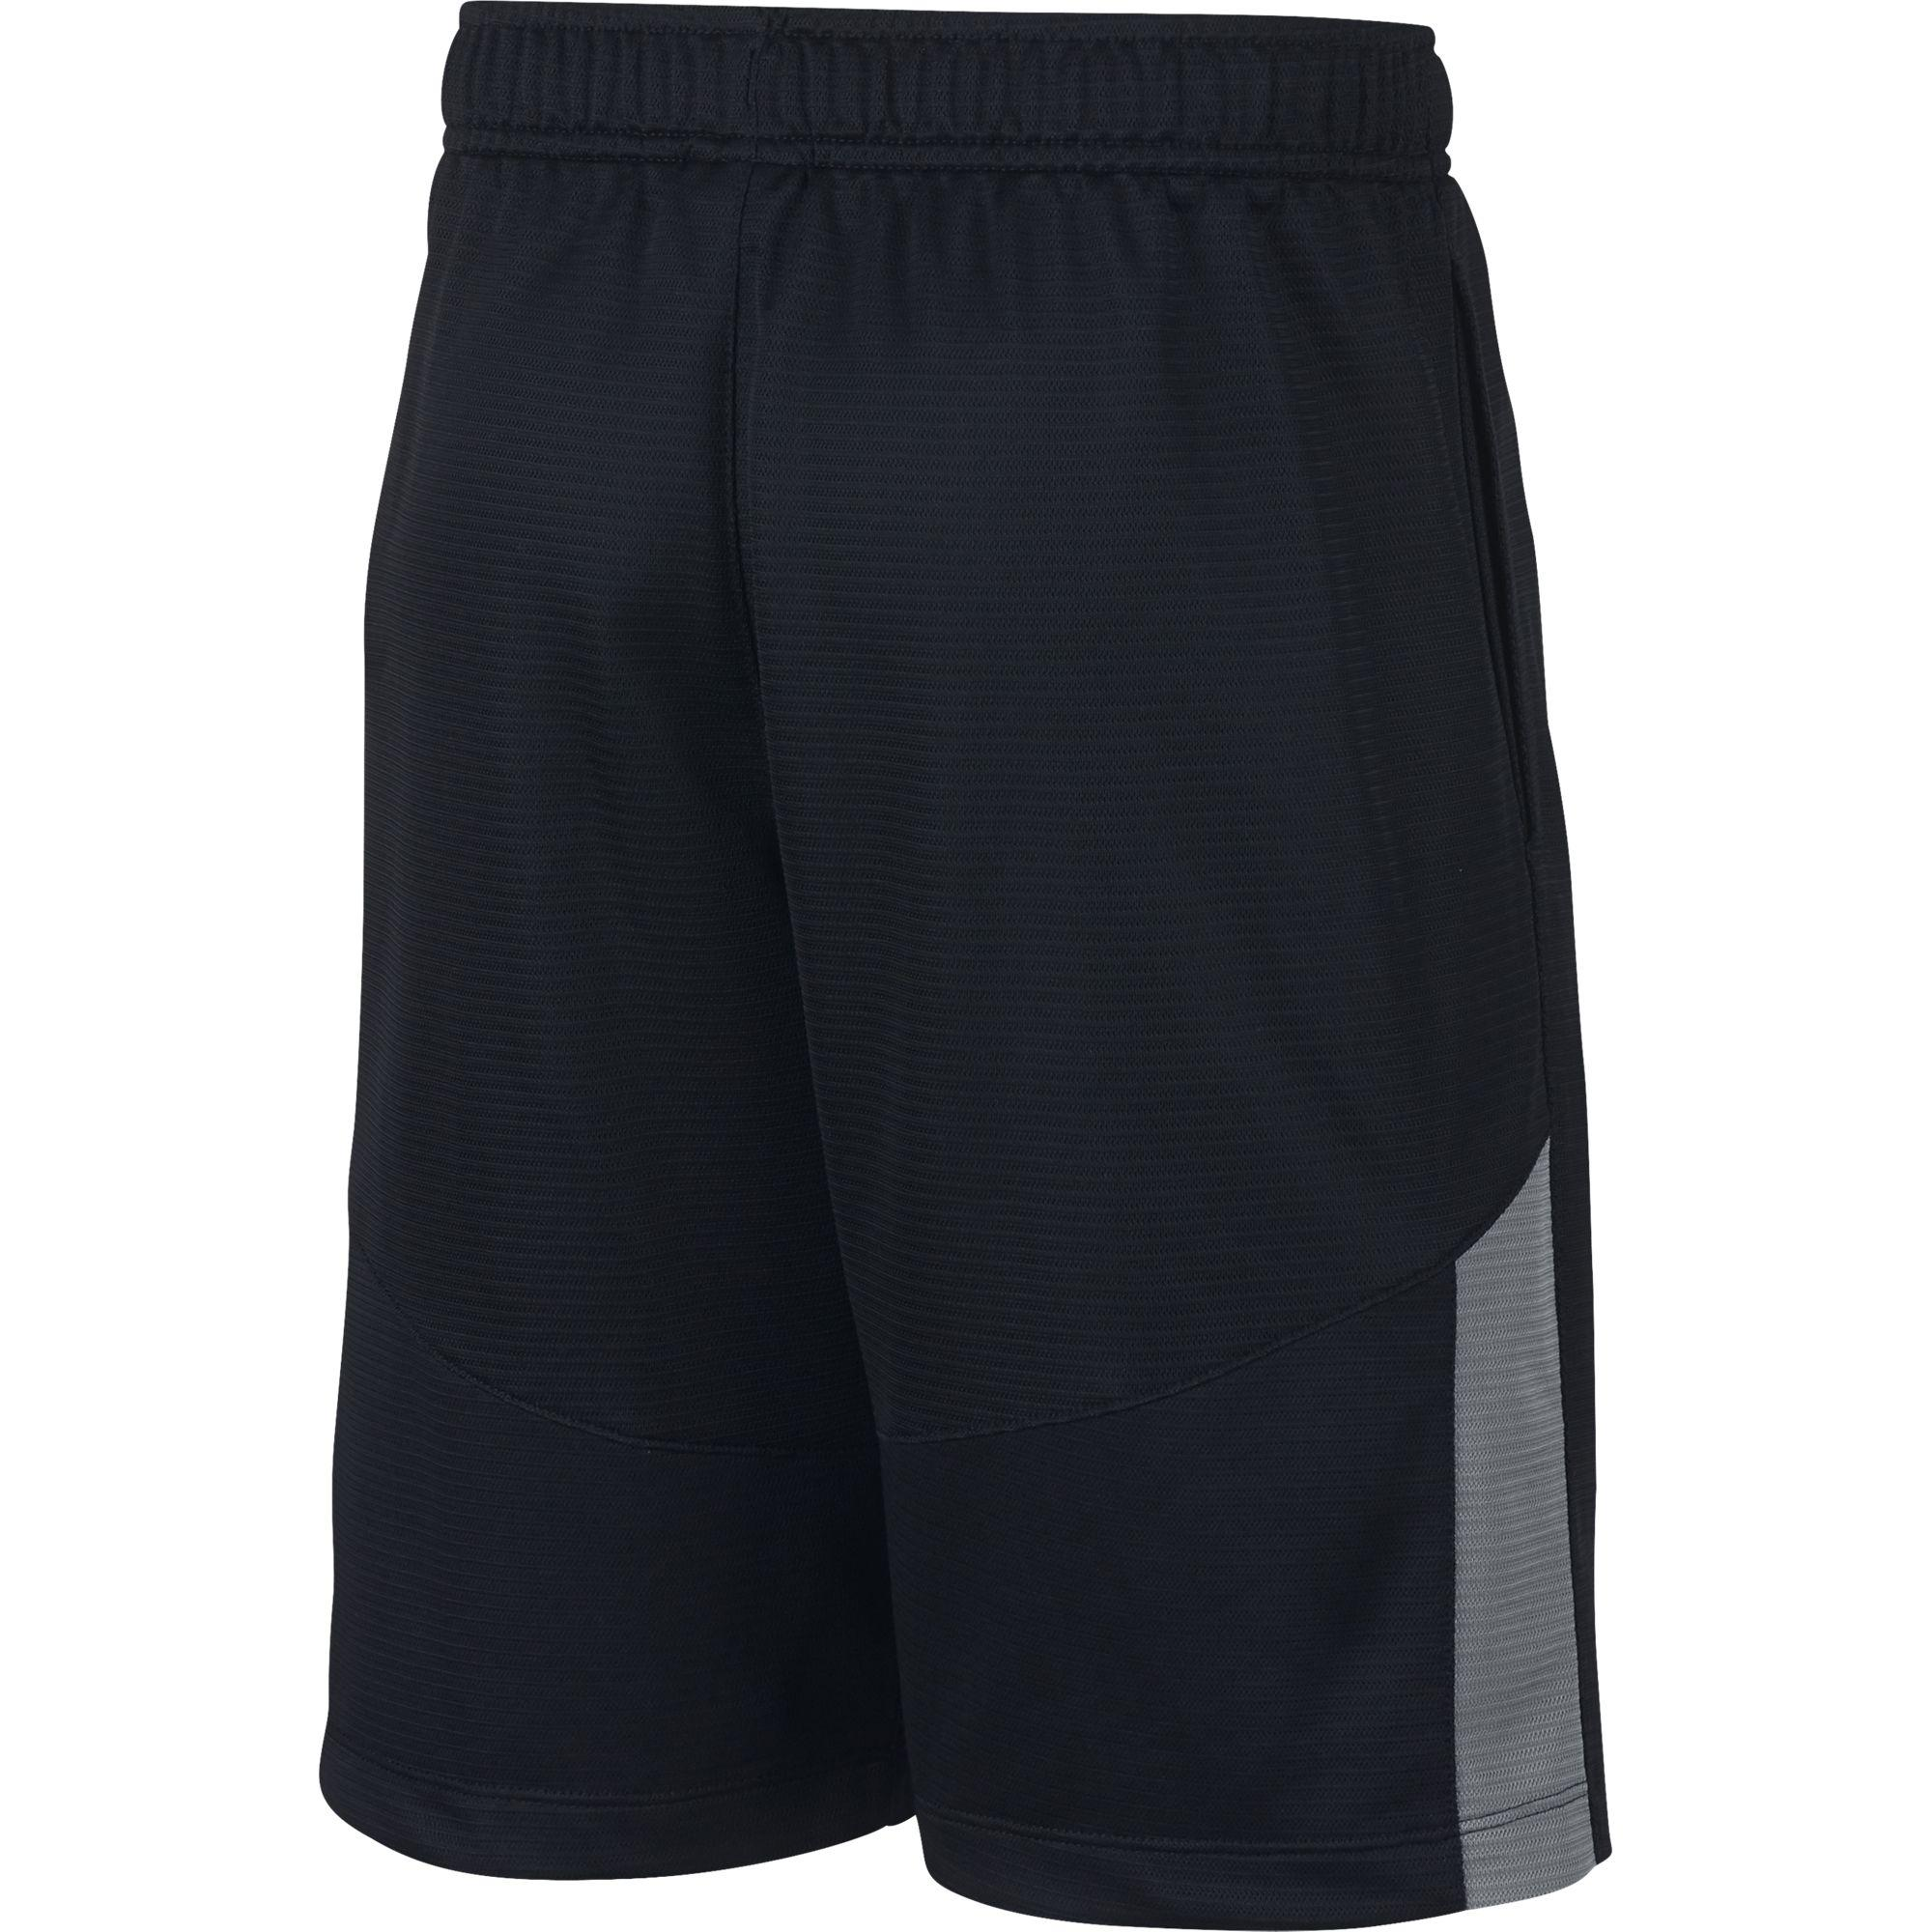 Nike Boys Dry Shorts - Black/Cool Grey - Tennisnuts.com